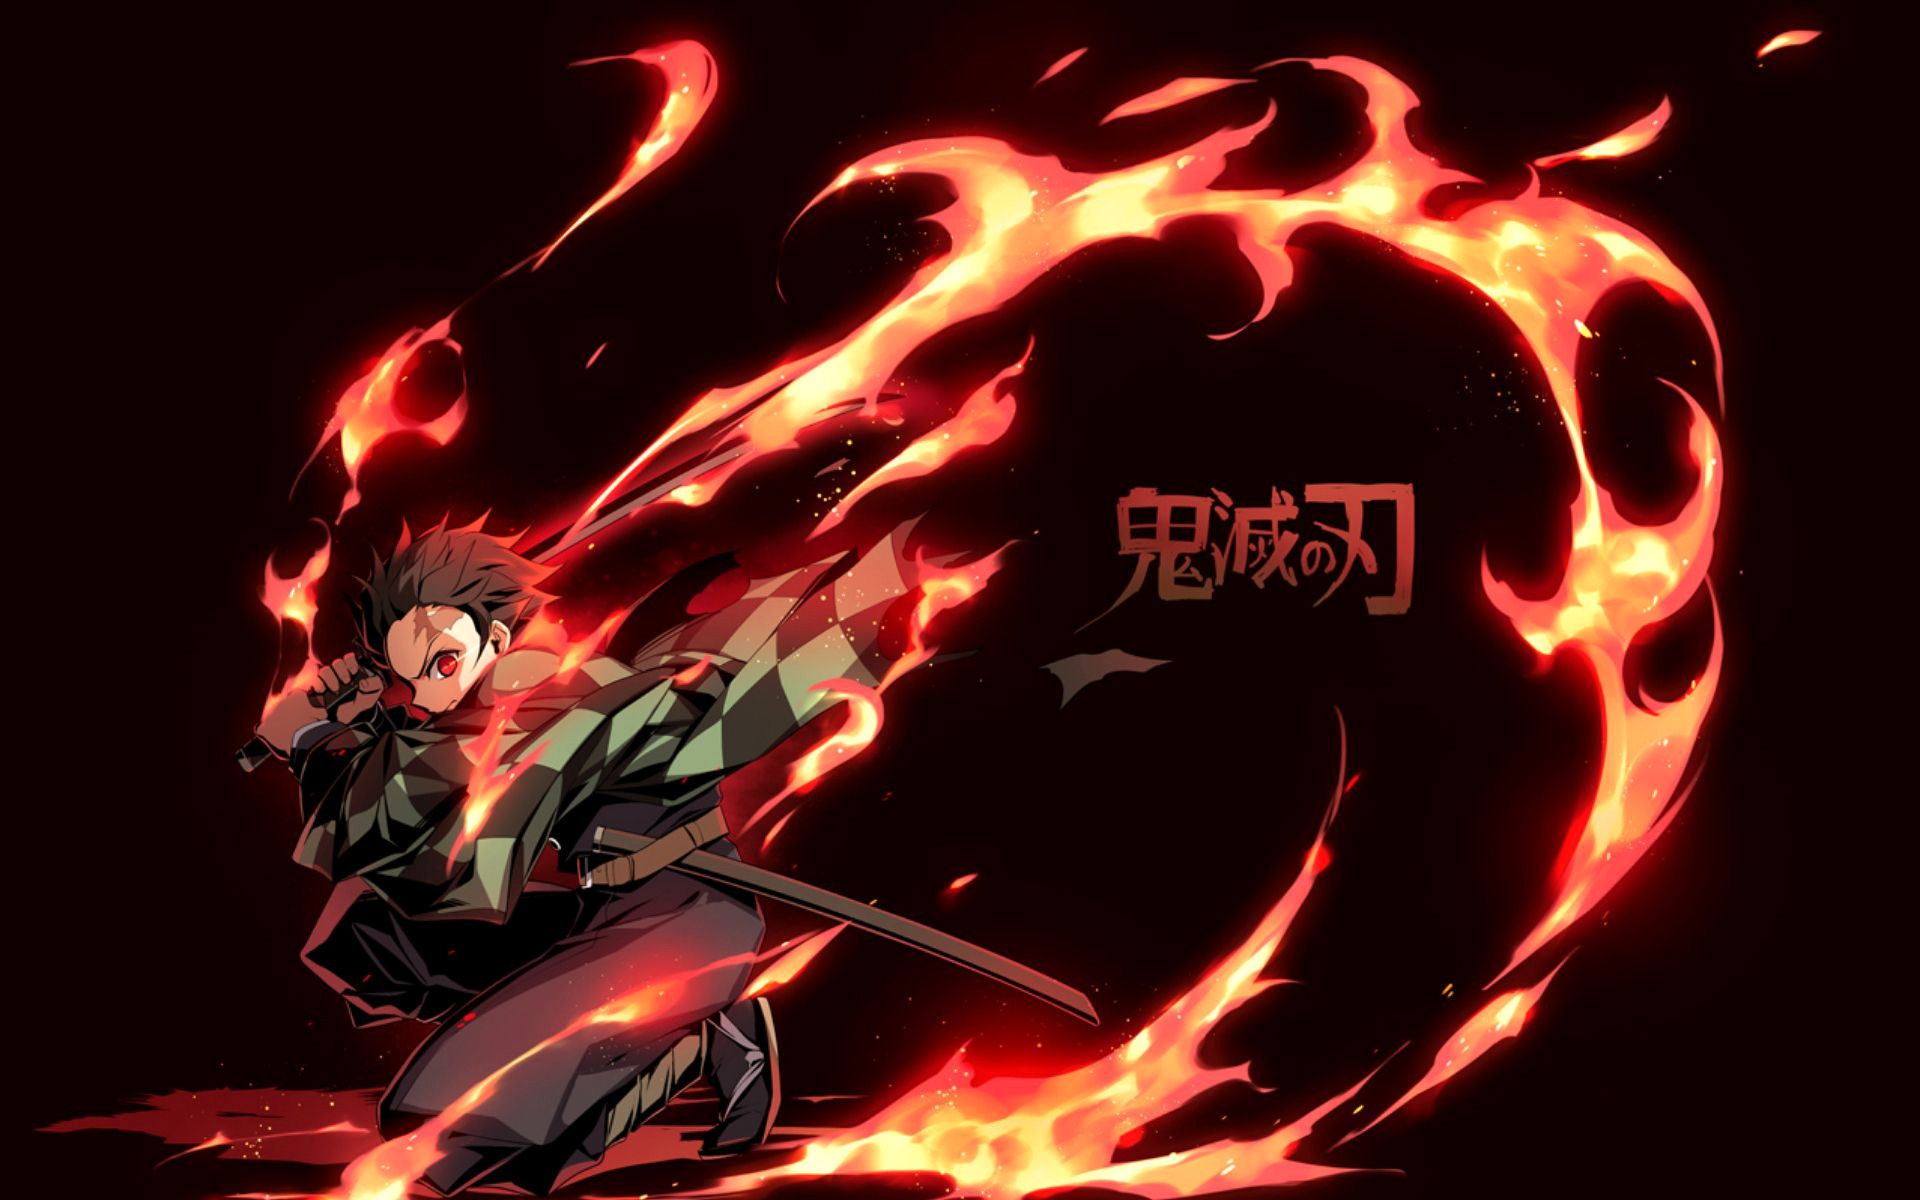 Best Of Demon Slayer Wallpapers Top Free Demon Slayer Backgrounds Anime Demon Slayer Anime Anime Wallpaper